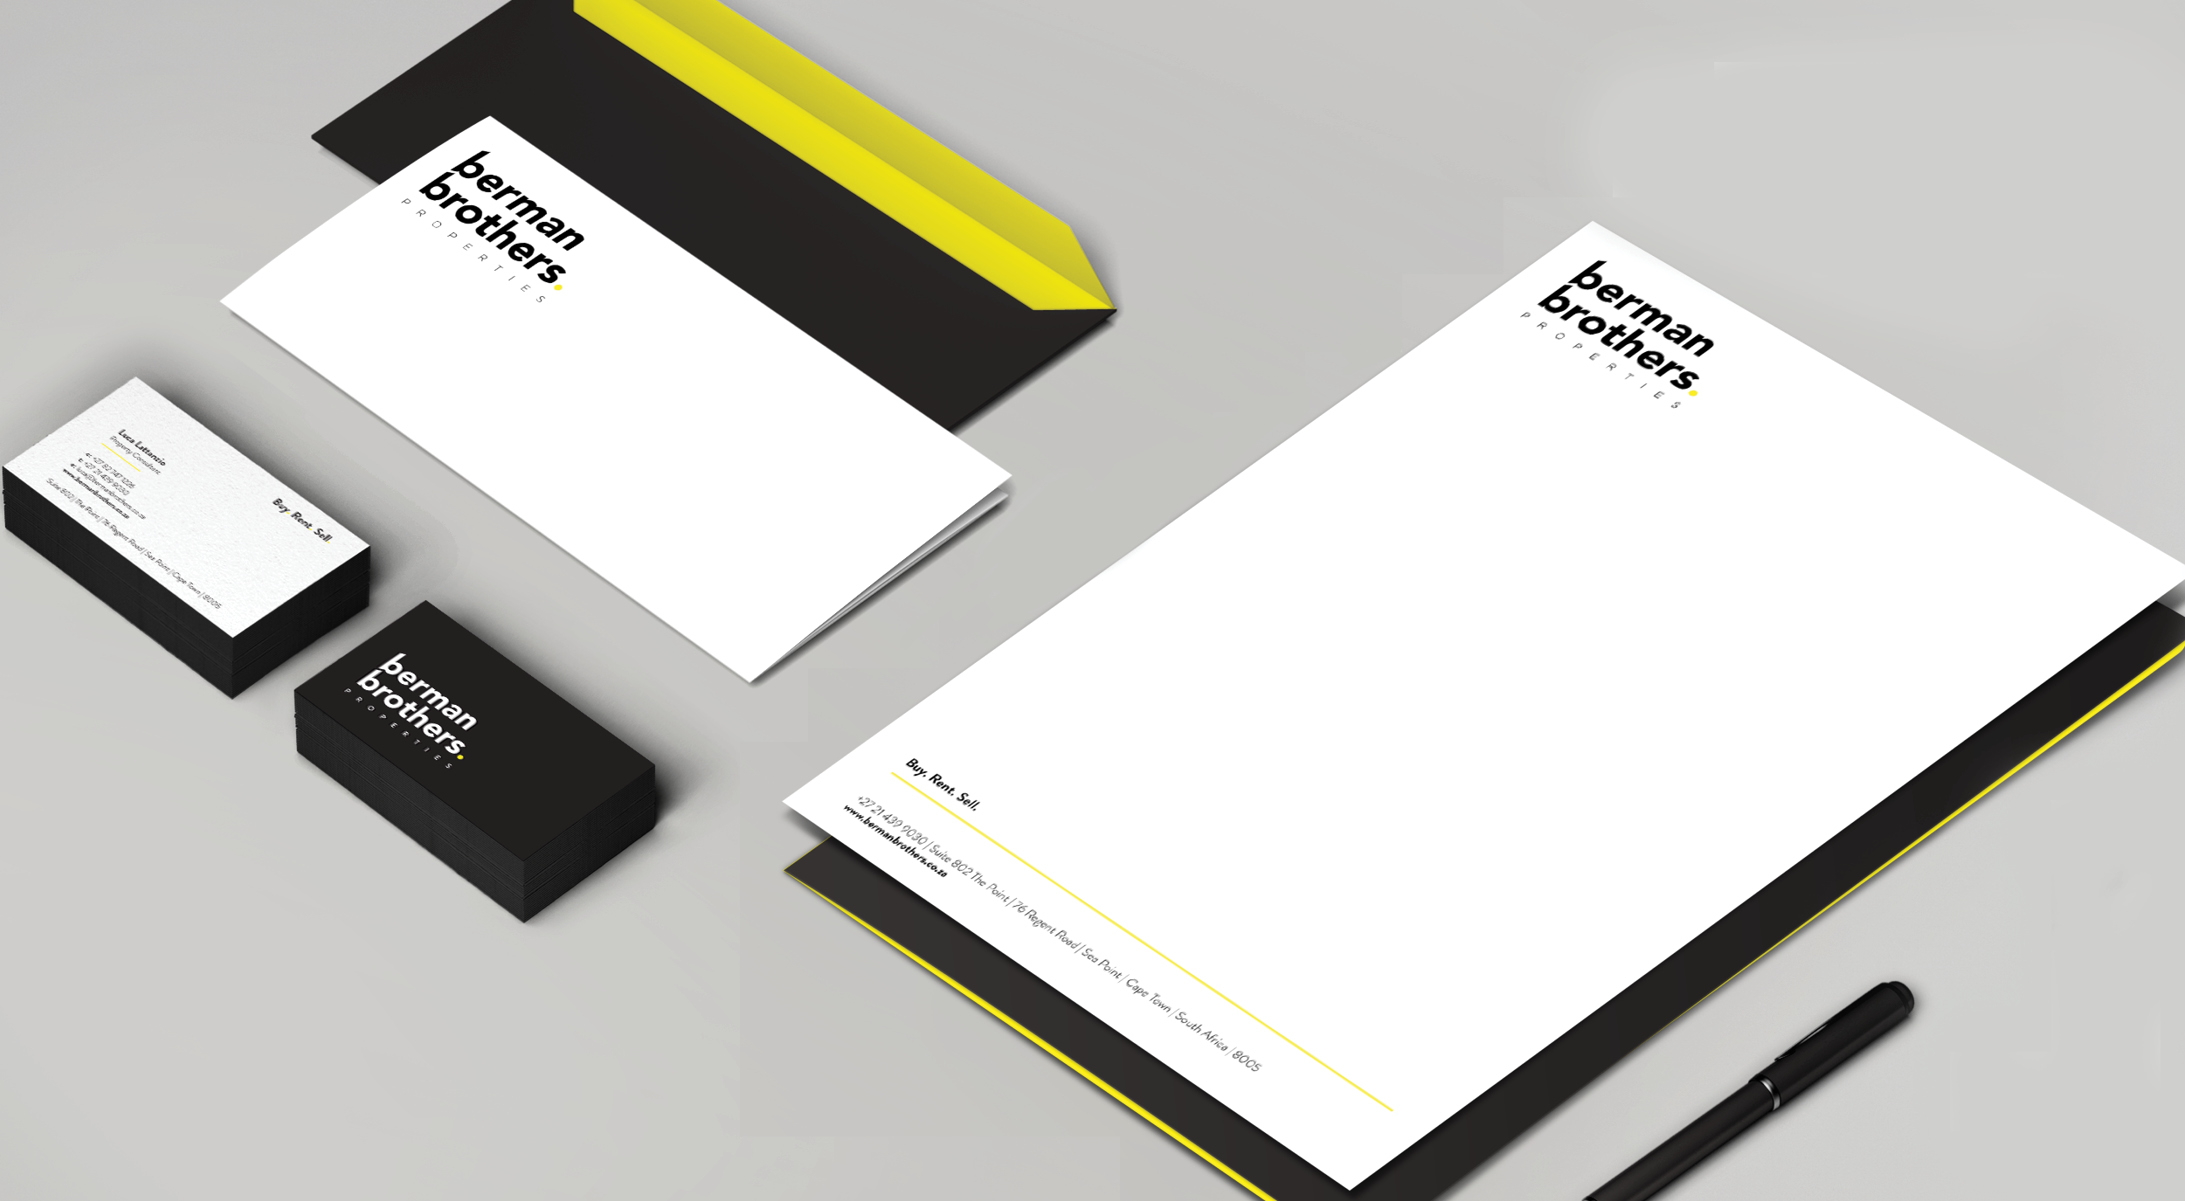 berman brothers – identity design